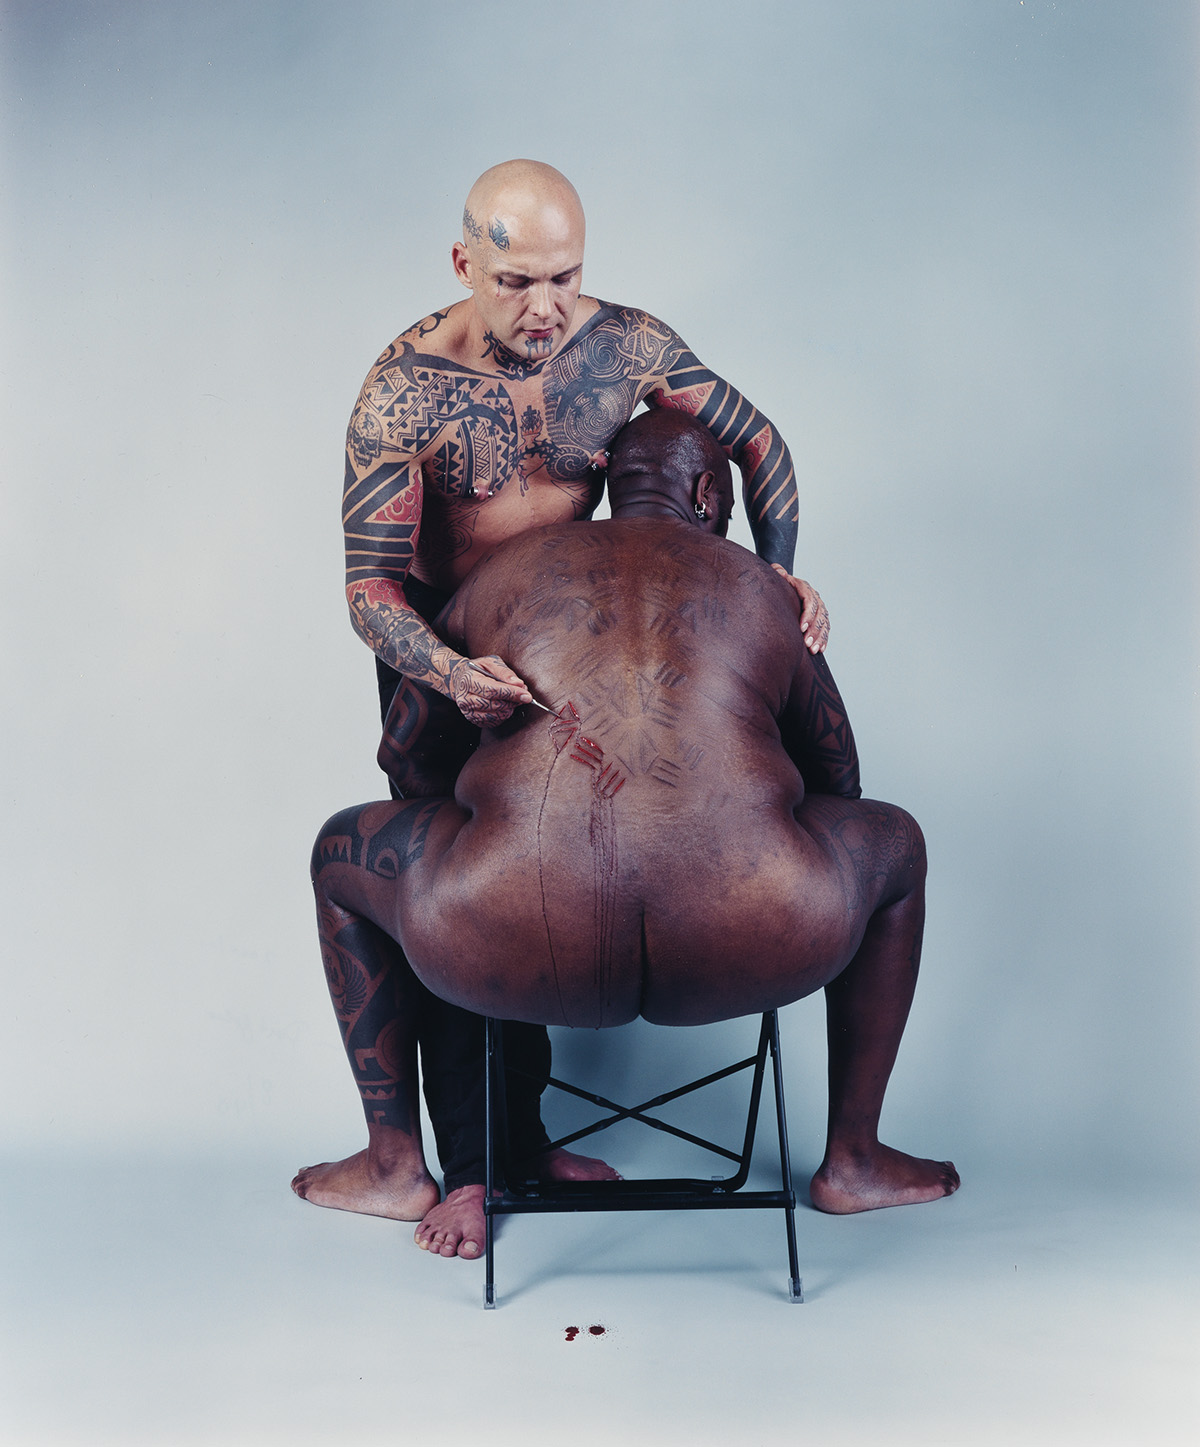 CATHERINE OPIE (1961- ) Ron Athey/Human Printing Press with Darryl Carlton, from Four Scenes.